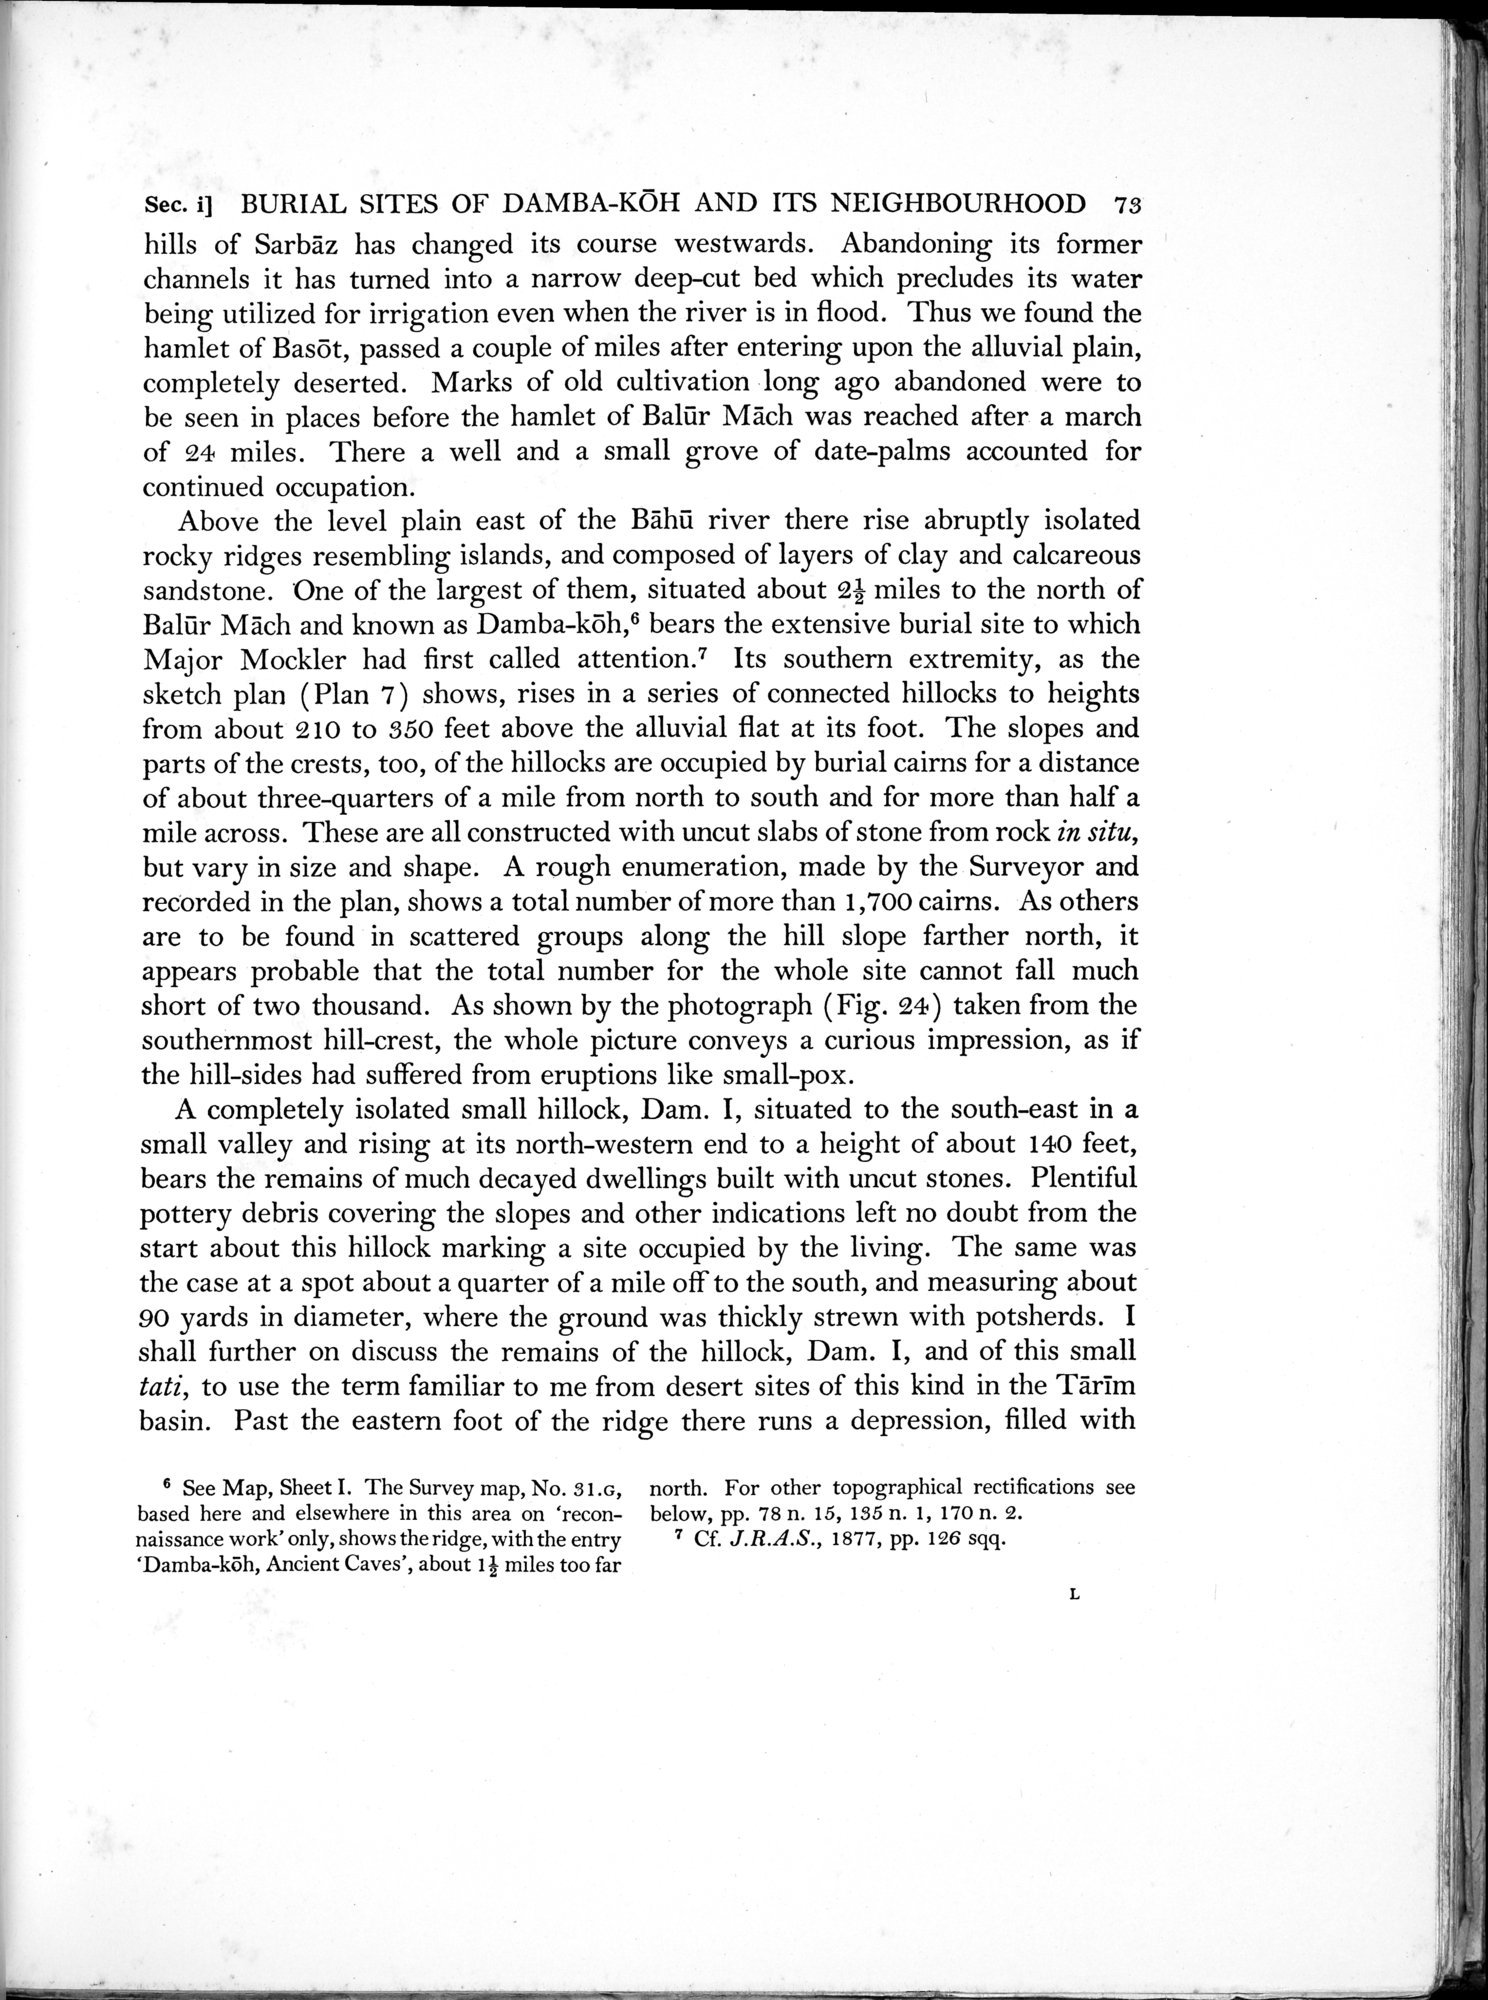 Archaeological Reconnaissances in North-Western India and South-Eastern Īrān : vol.1 / Page 119 (Grayscale High Resolution Image)